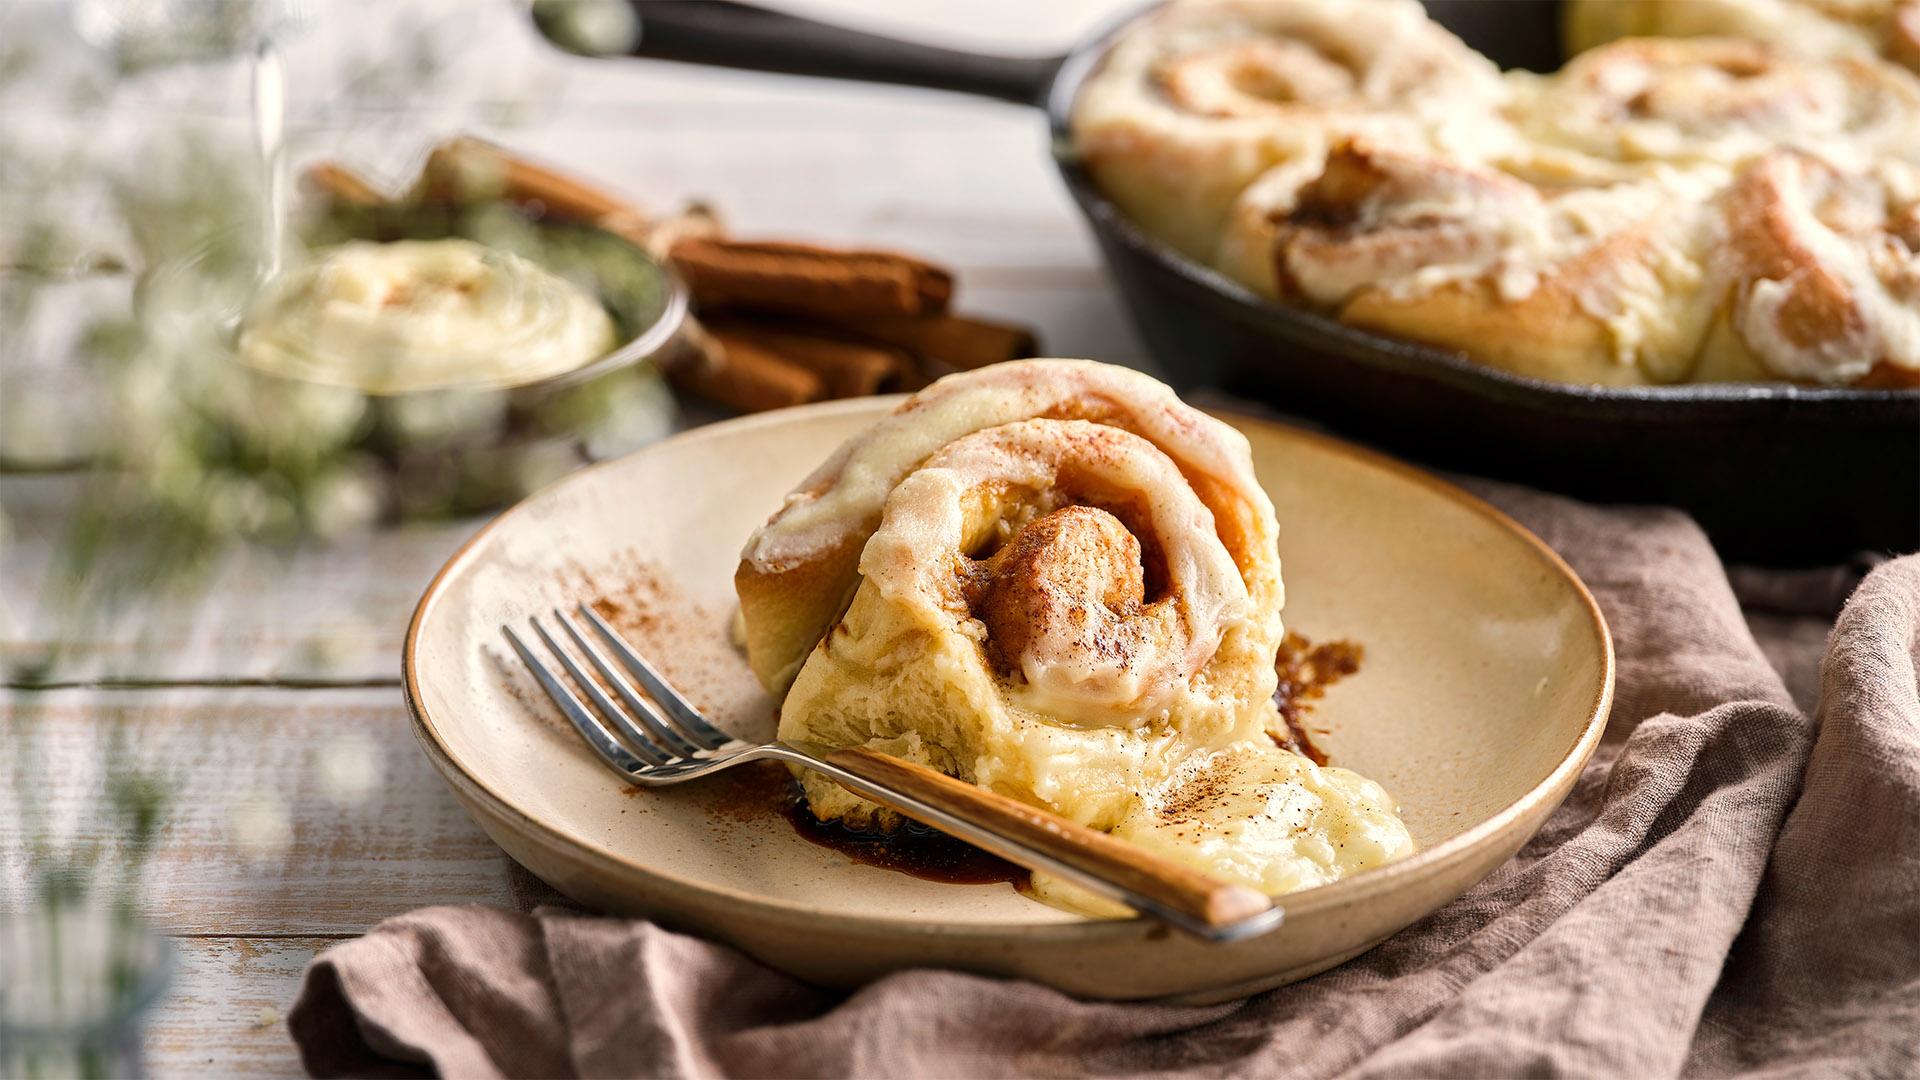 A cast iron pan is filled with Mascarpone Brioche Cinnamon Rolls and sits next to a plate with a serving.